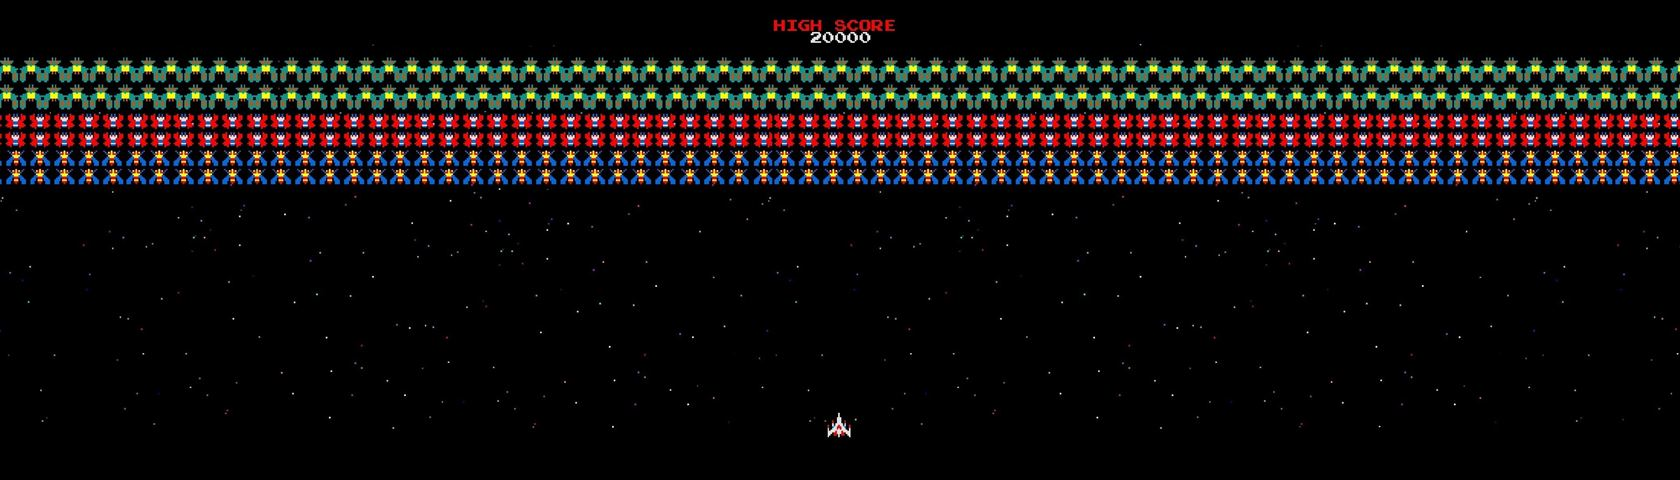 Galaga Extreme Images WallpaperFusion by Binary Fortress Software 1680x480